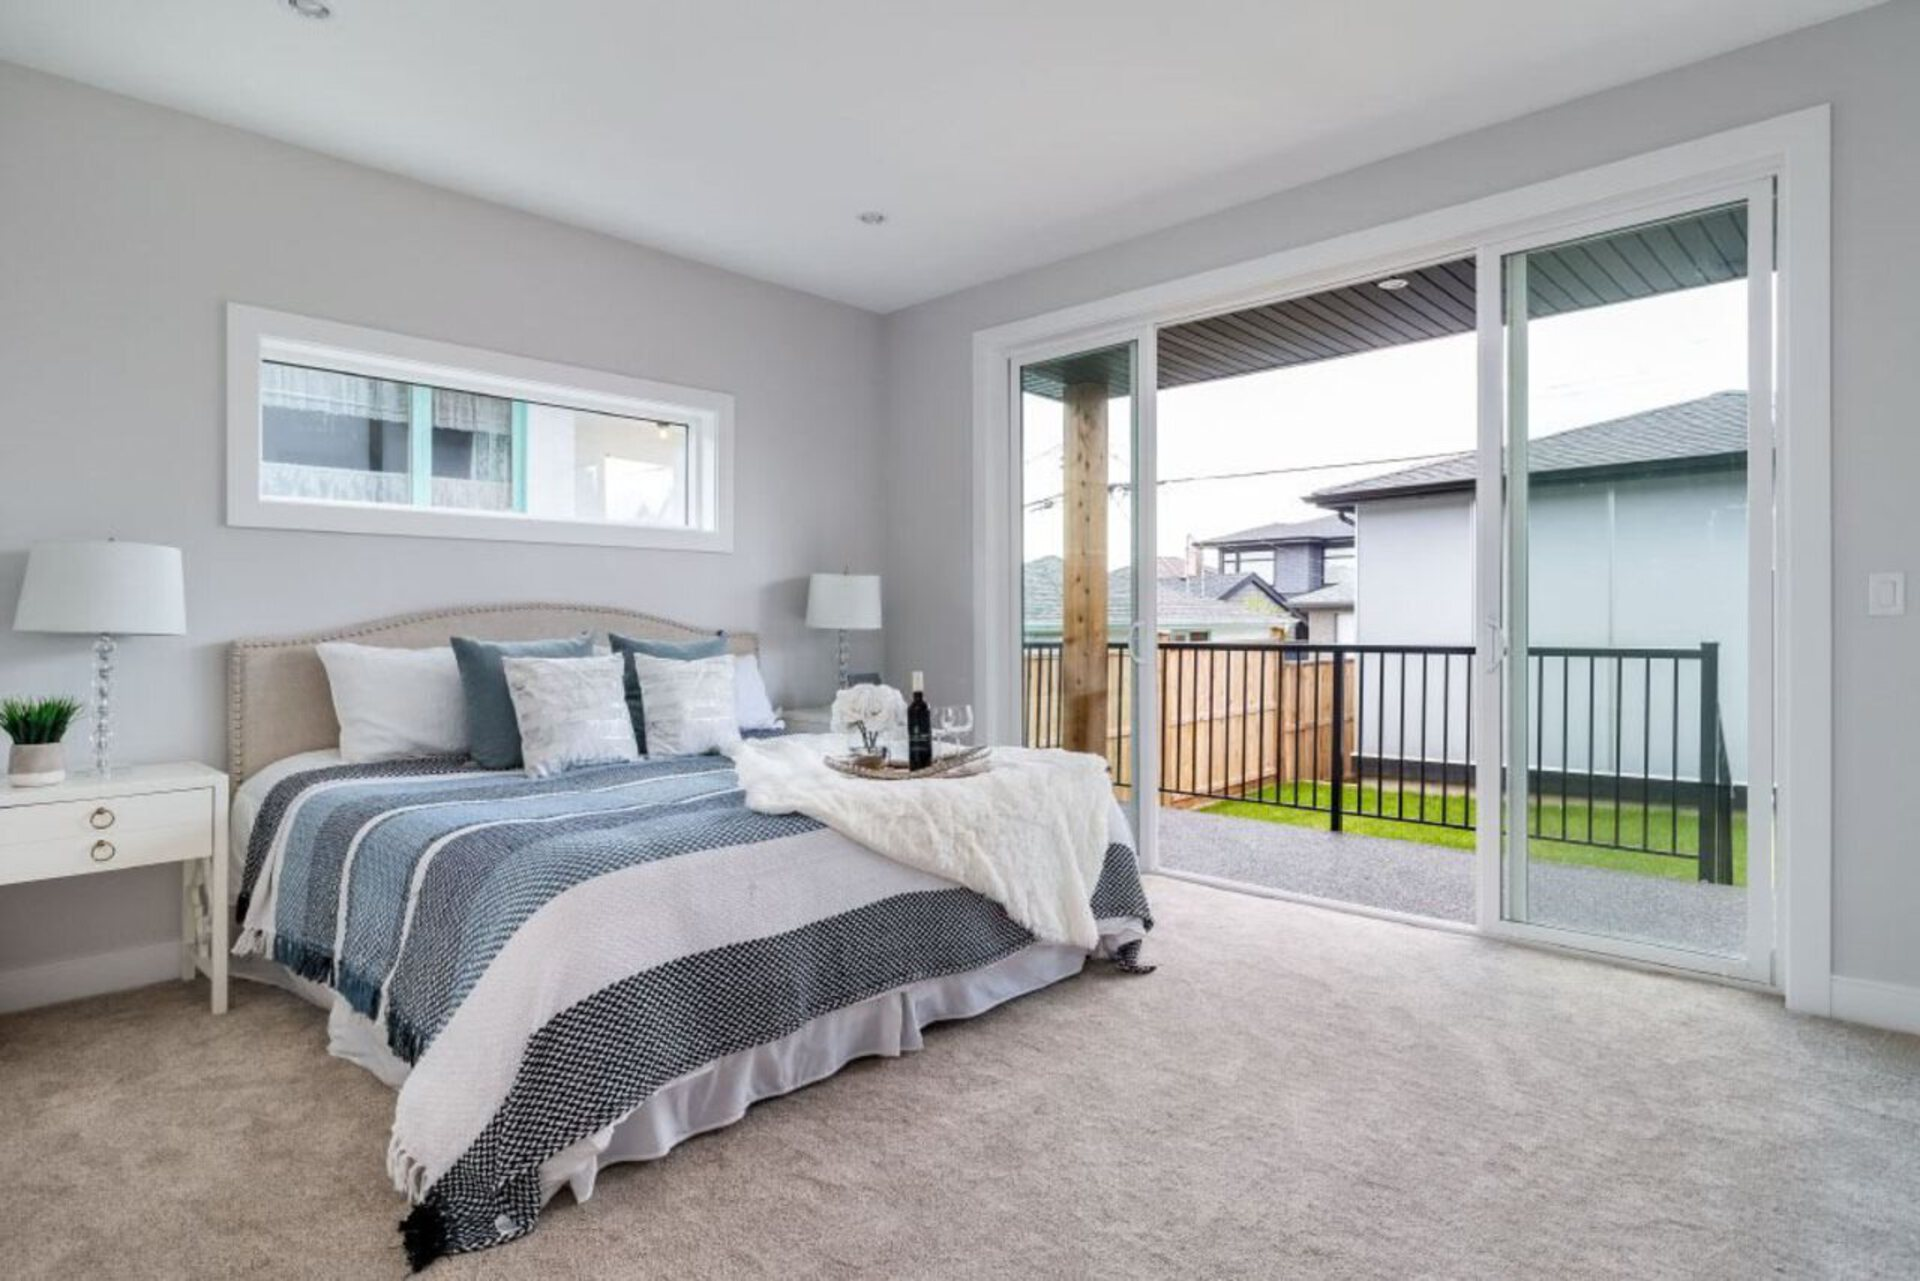 33-howard-avenue-capitol-hill-bn-burnaby-north-15 at 33 Howard Avenue, Capitol Hill BN, Burnaby North